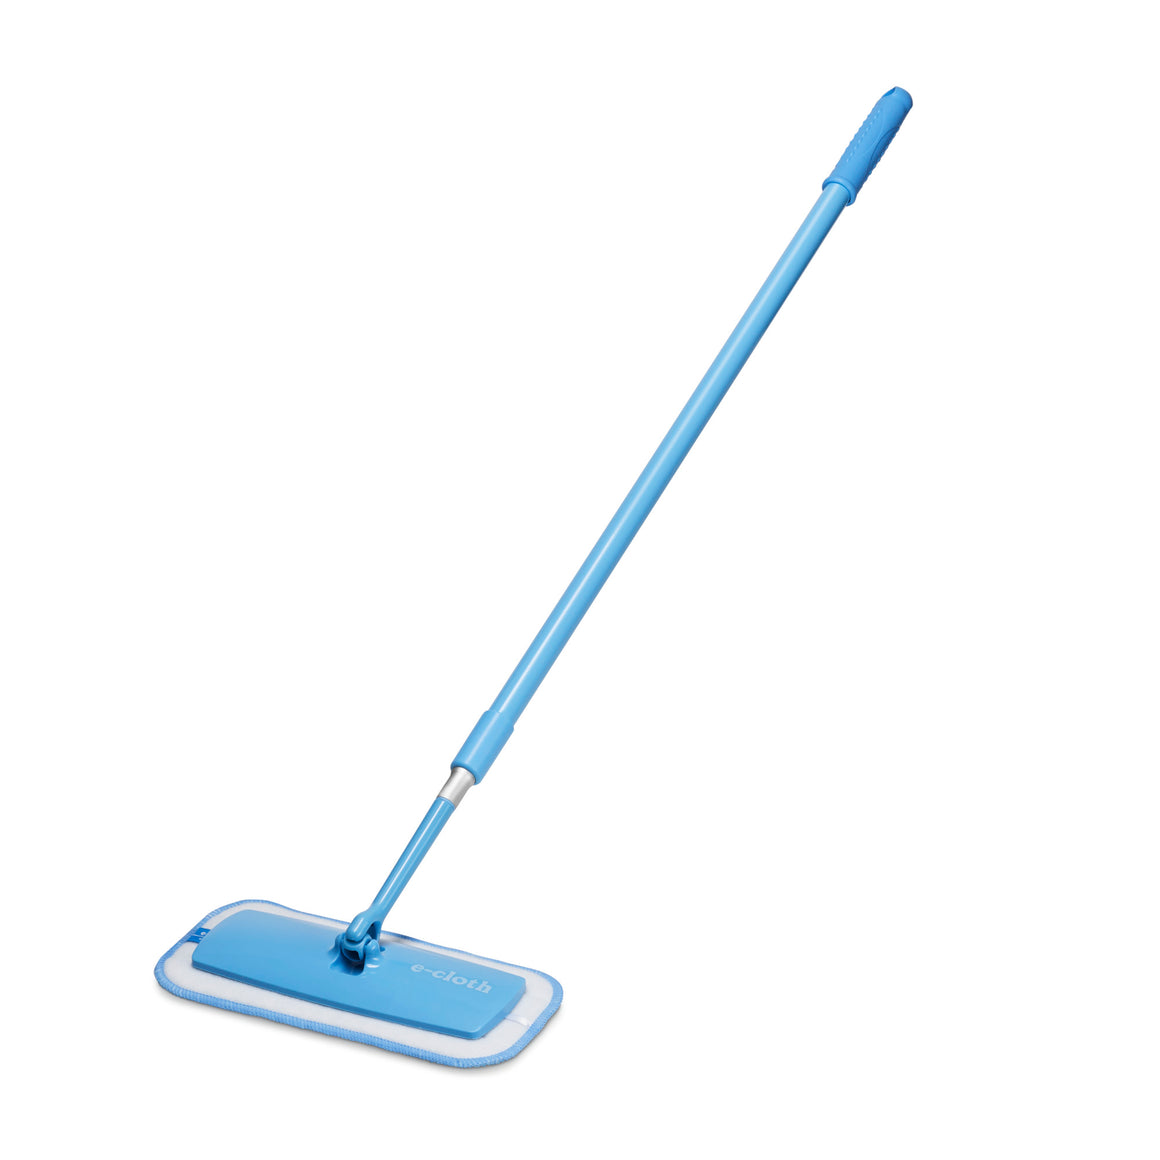 Mini Deep Clean Mop - Compact European Microfiber Damp Mop with Sturdy Telescoping Handle